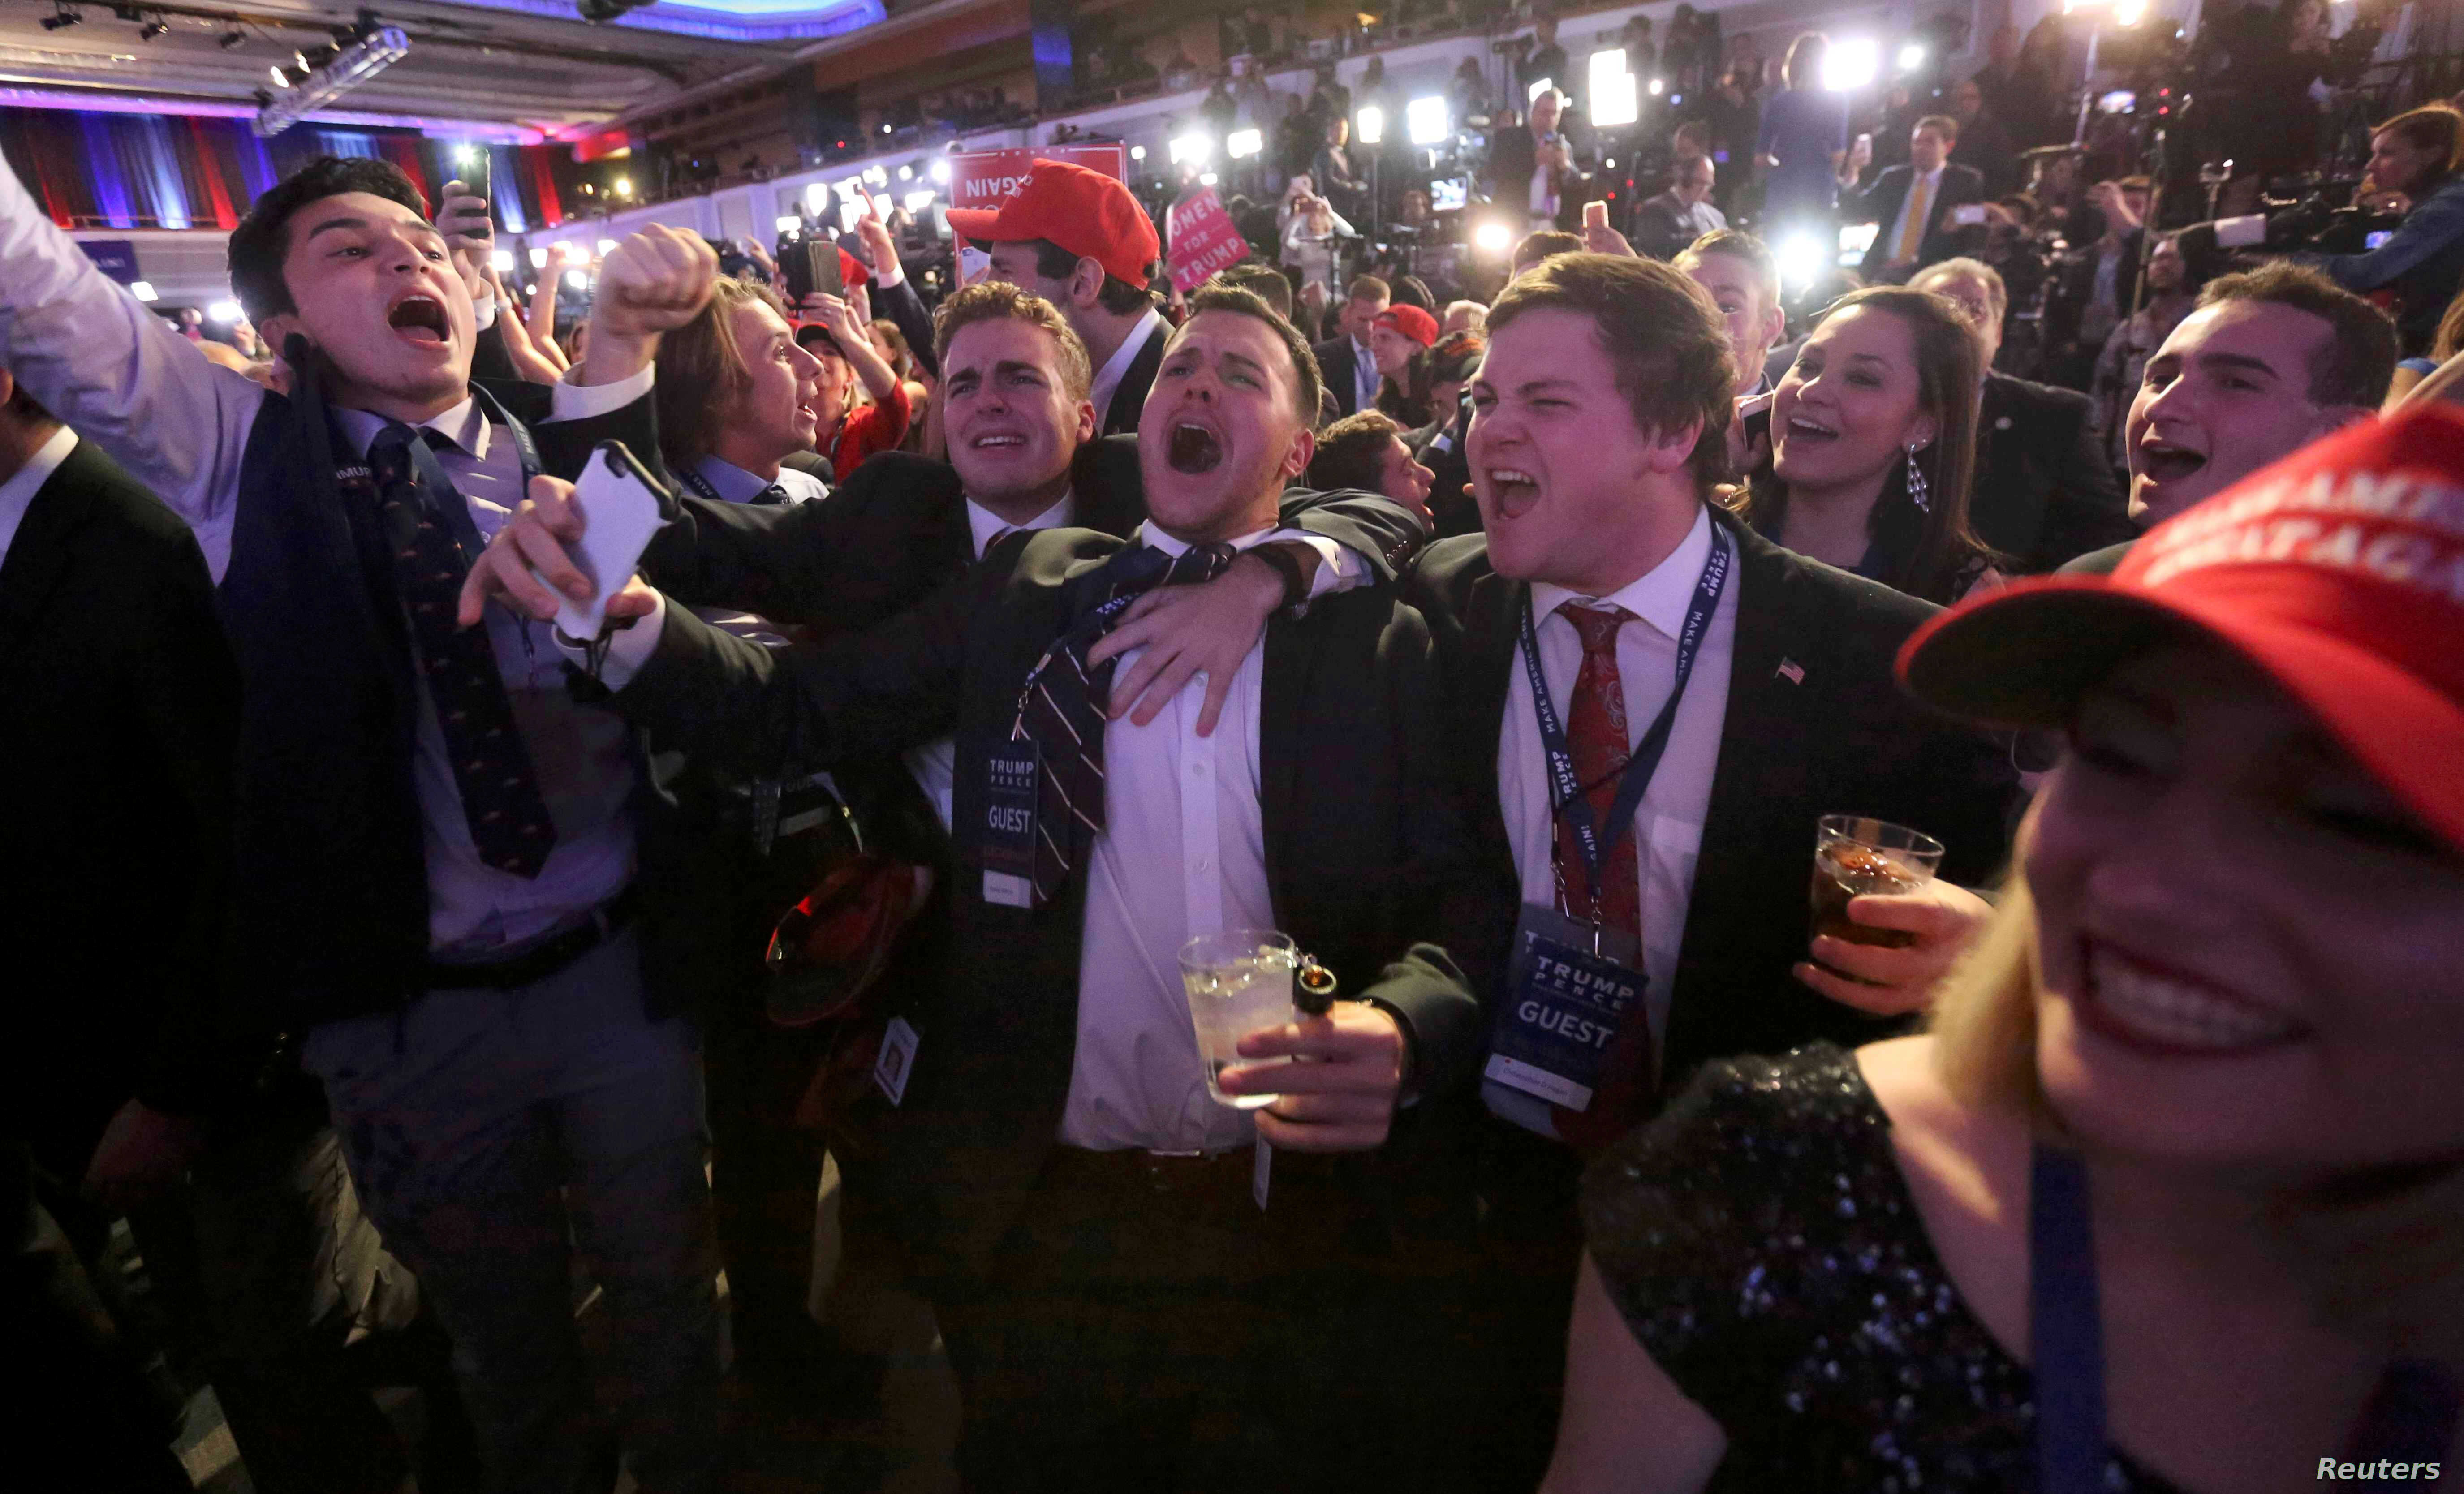 Supporters of U.S. Republican presidential nominee Donald Trump react at his election night rally in Manhattan, New York, Nov. 8, 2016.